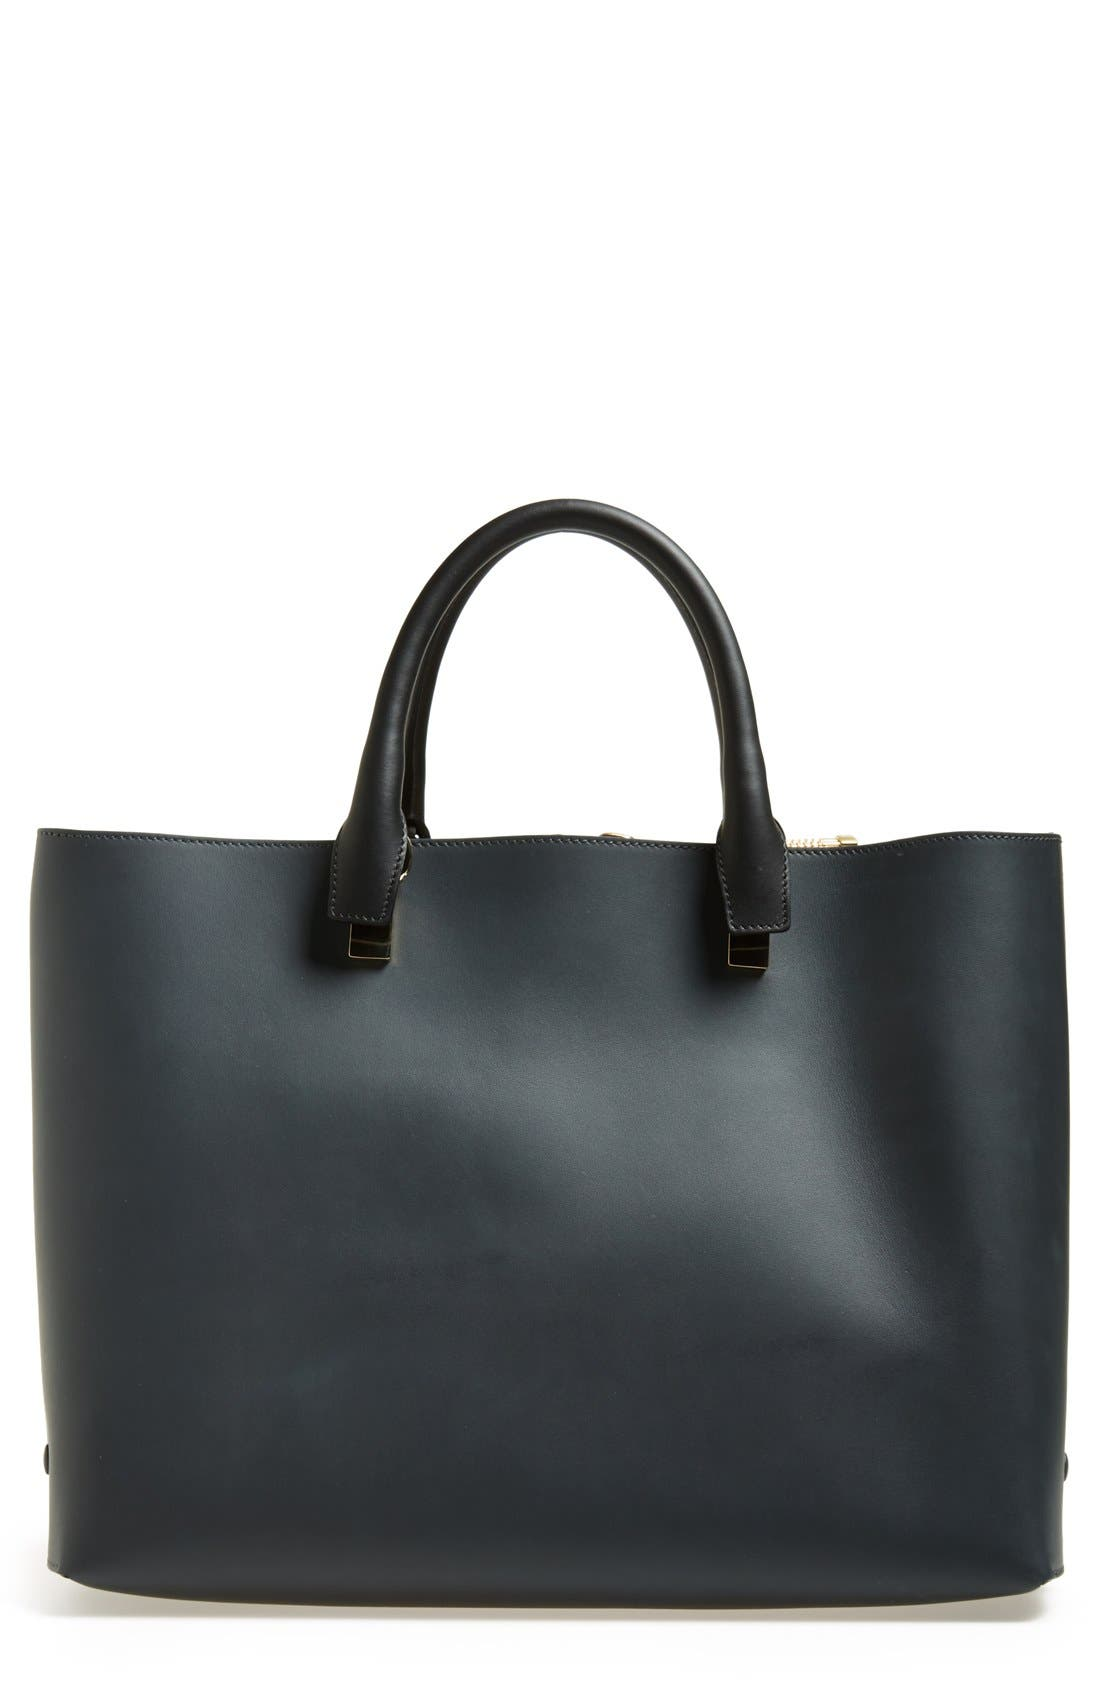 Alternate Image 1 Selected - Chloé 'Baylee - Medium' Leather Tote